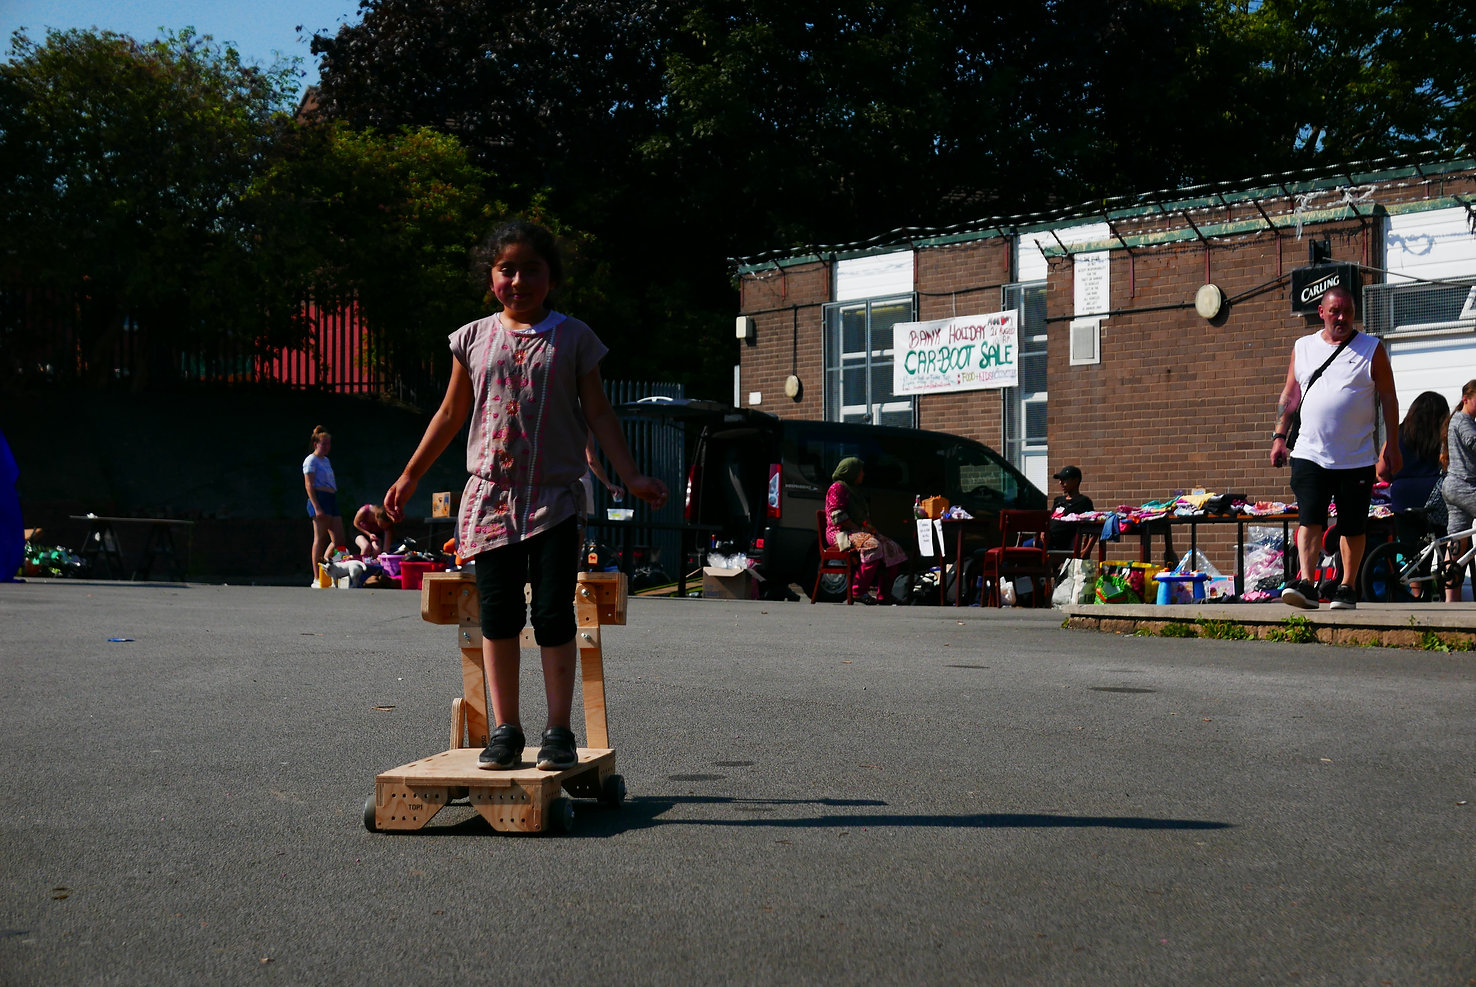 Photograph of a young person standing on a wooden wheeled go-cart they have built, in the middle of a car park with a car boot sale going on in the background.